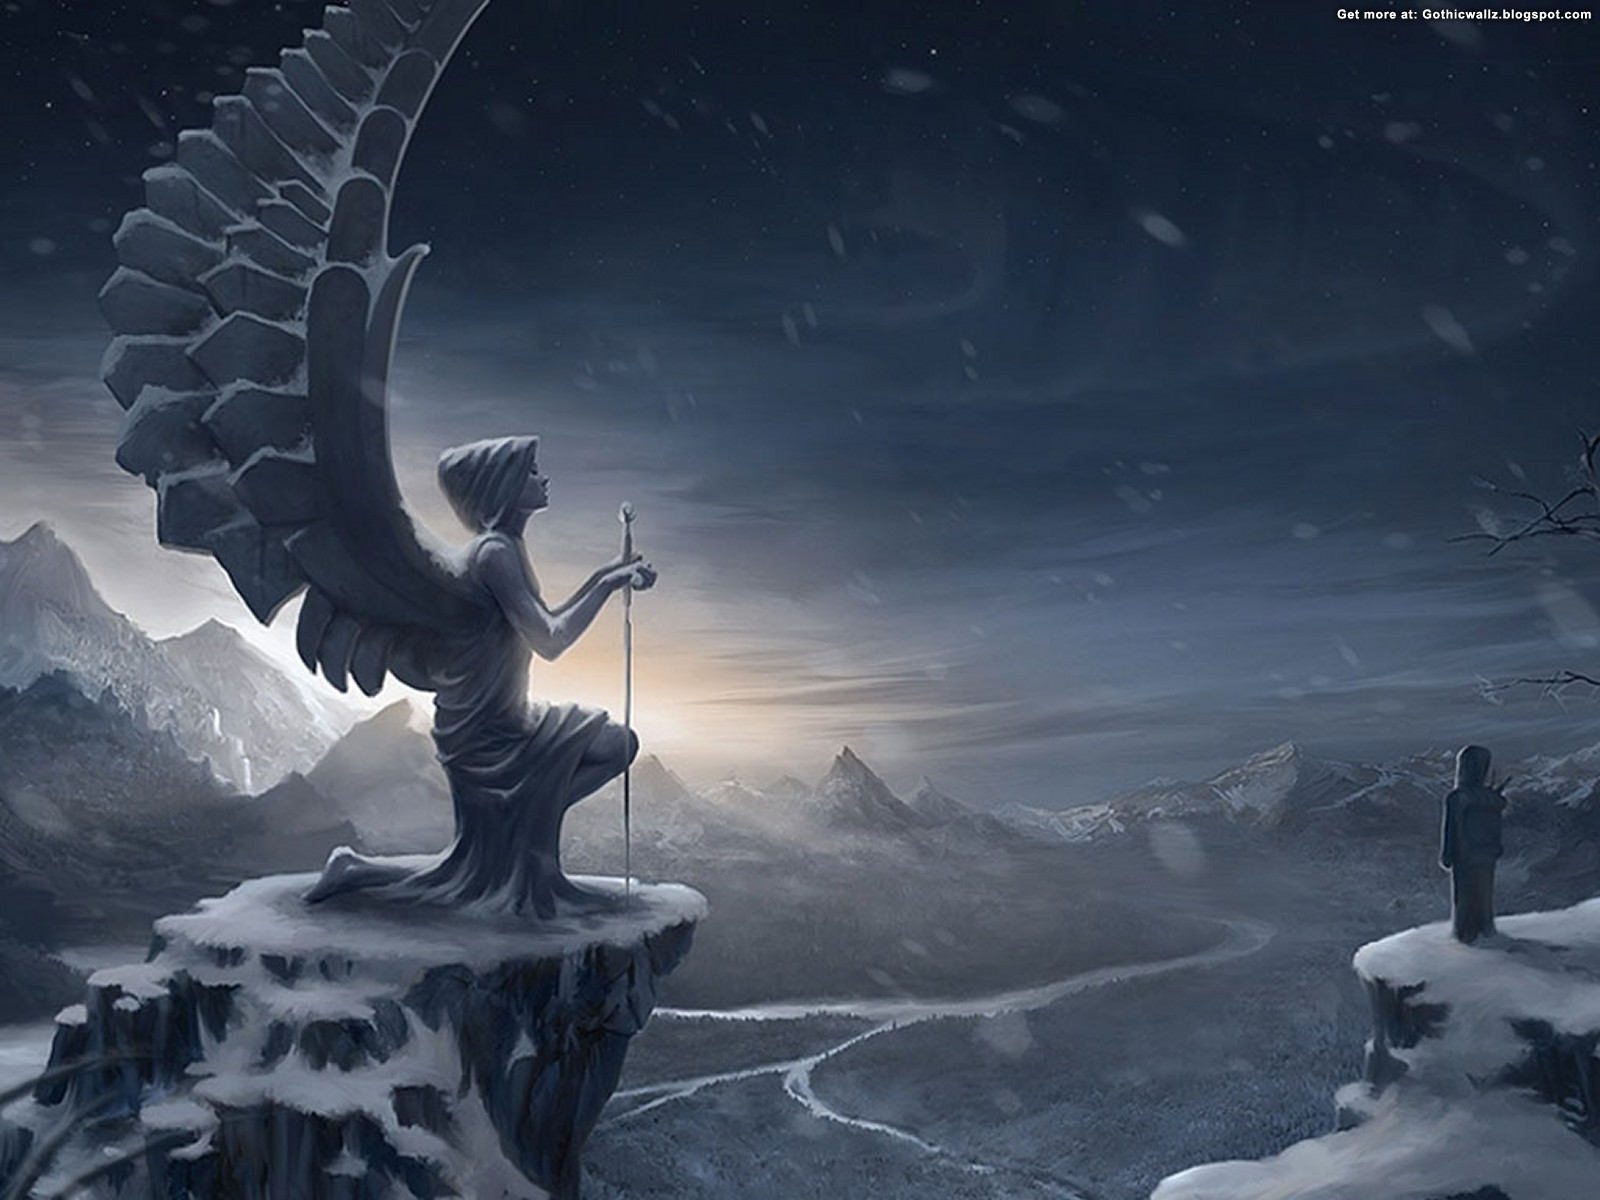 Winter in the Goth | Gothic Wallpaper Download